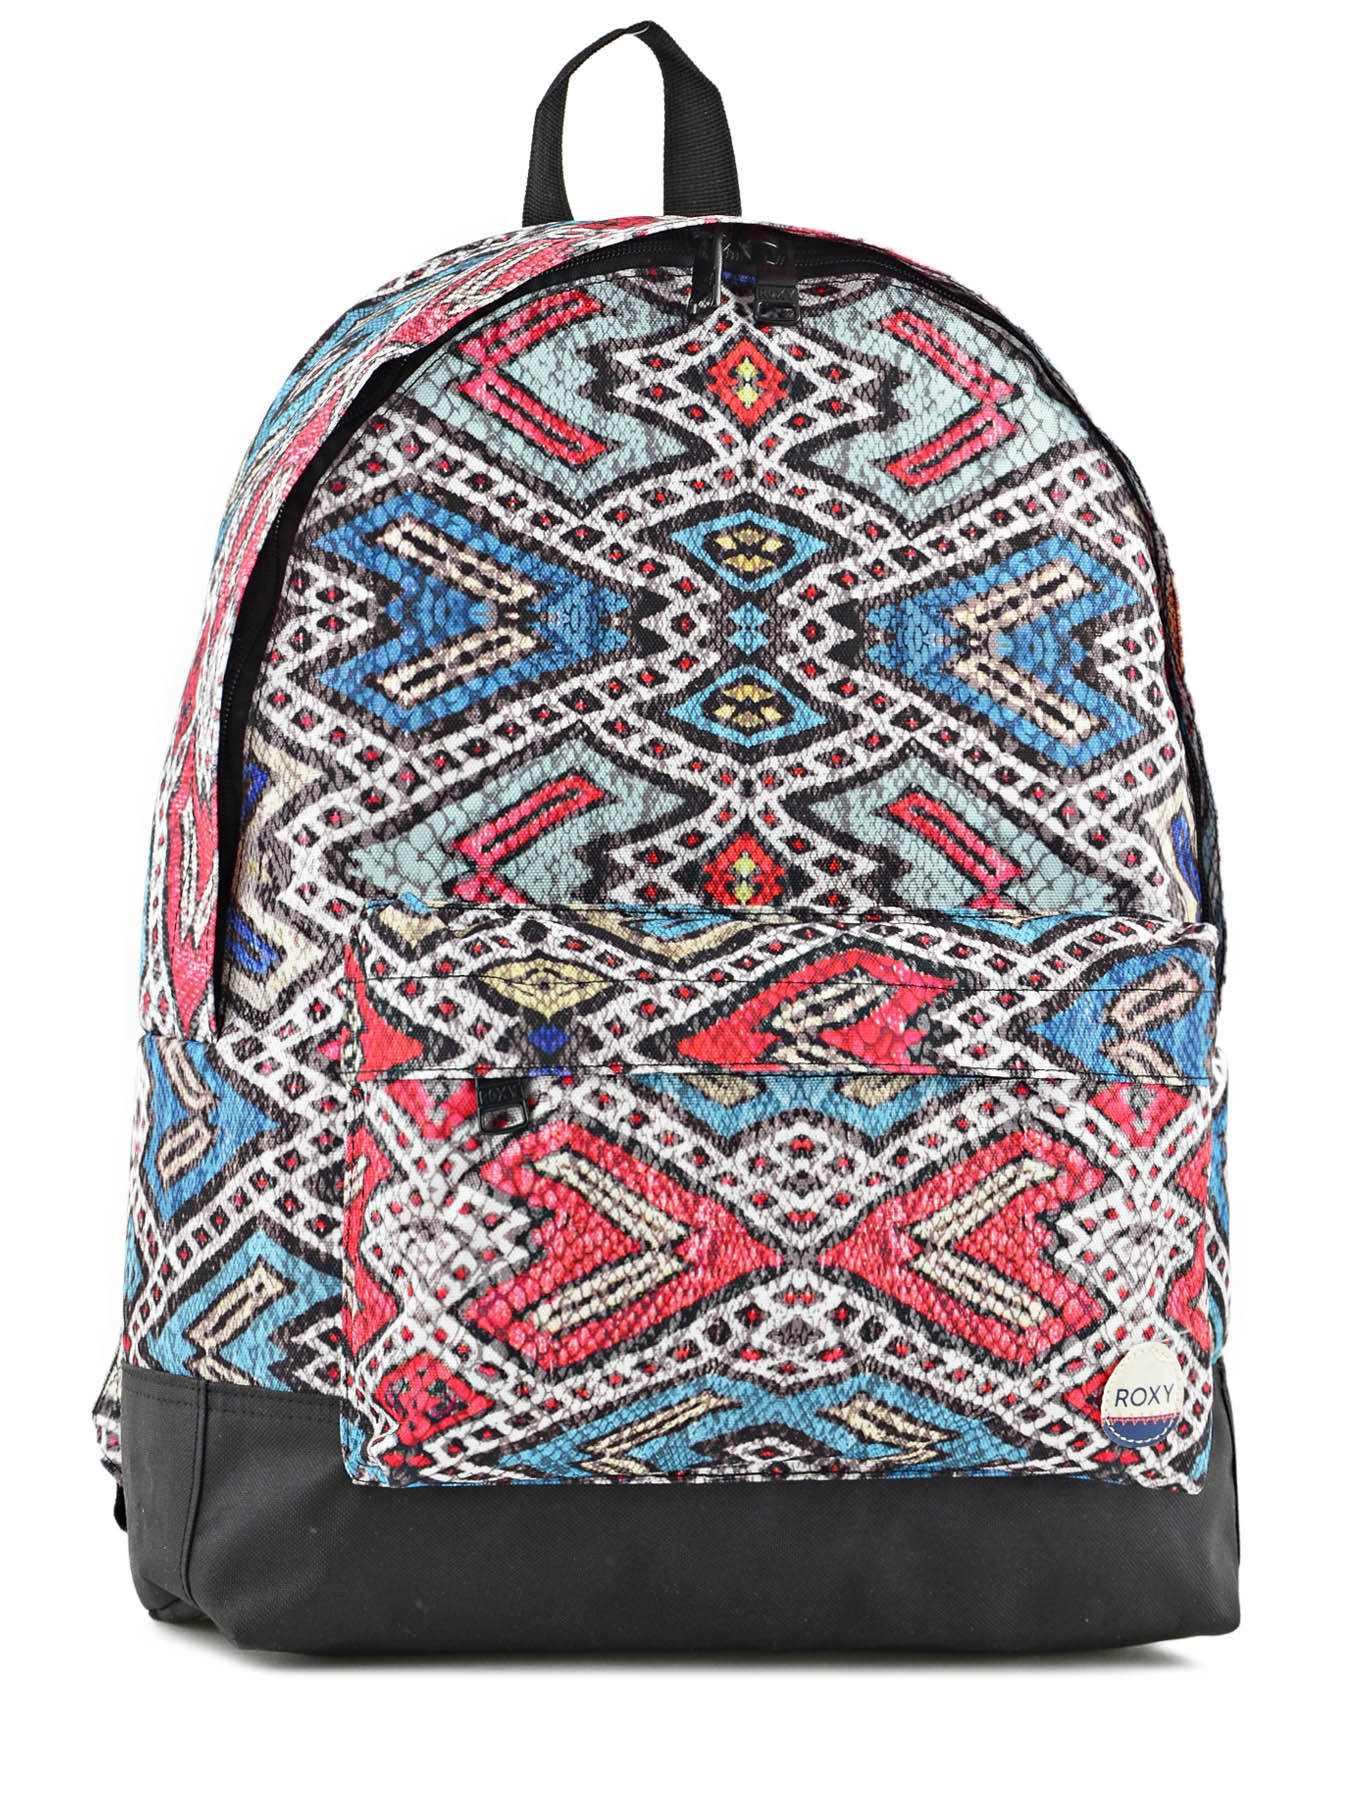 c76191ddc7d0 Backpack 1 compartment ROXY